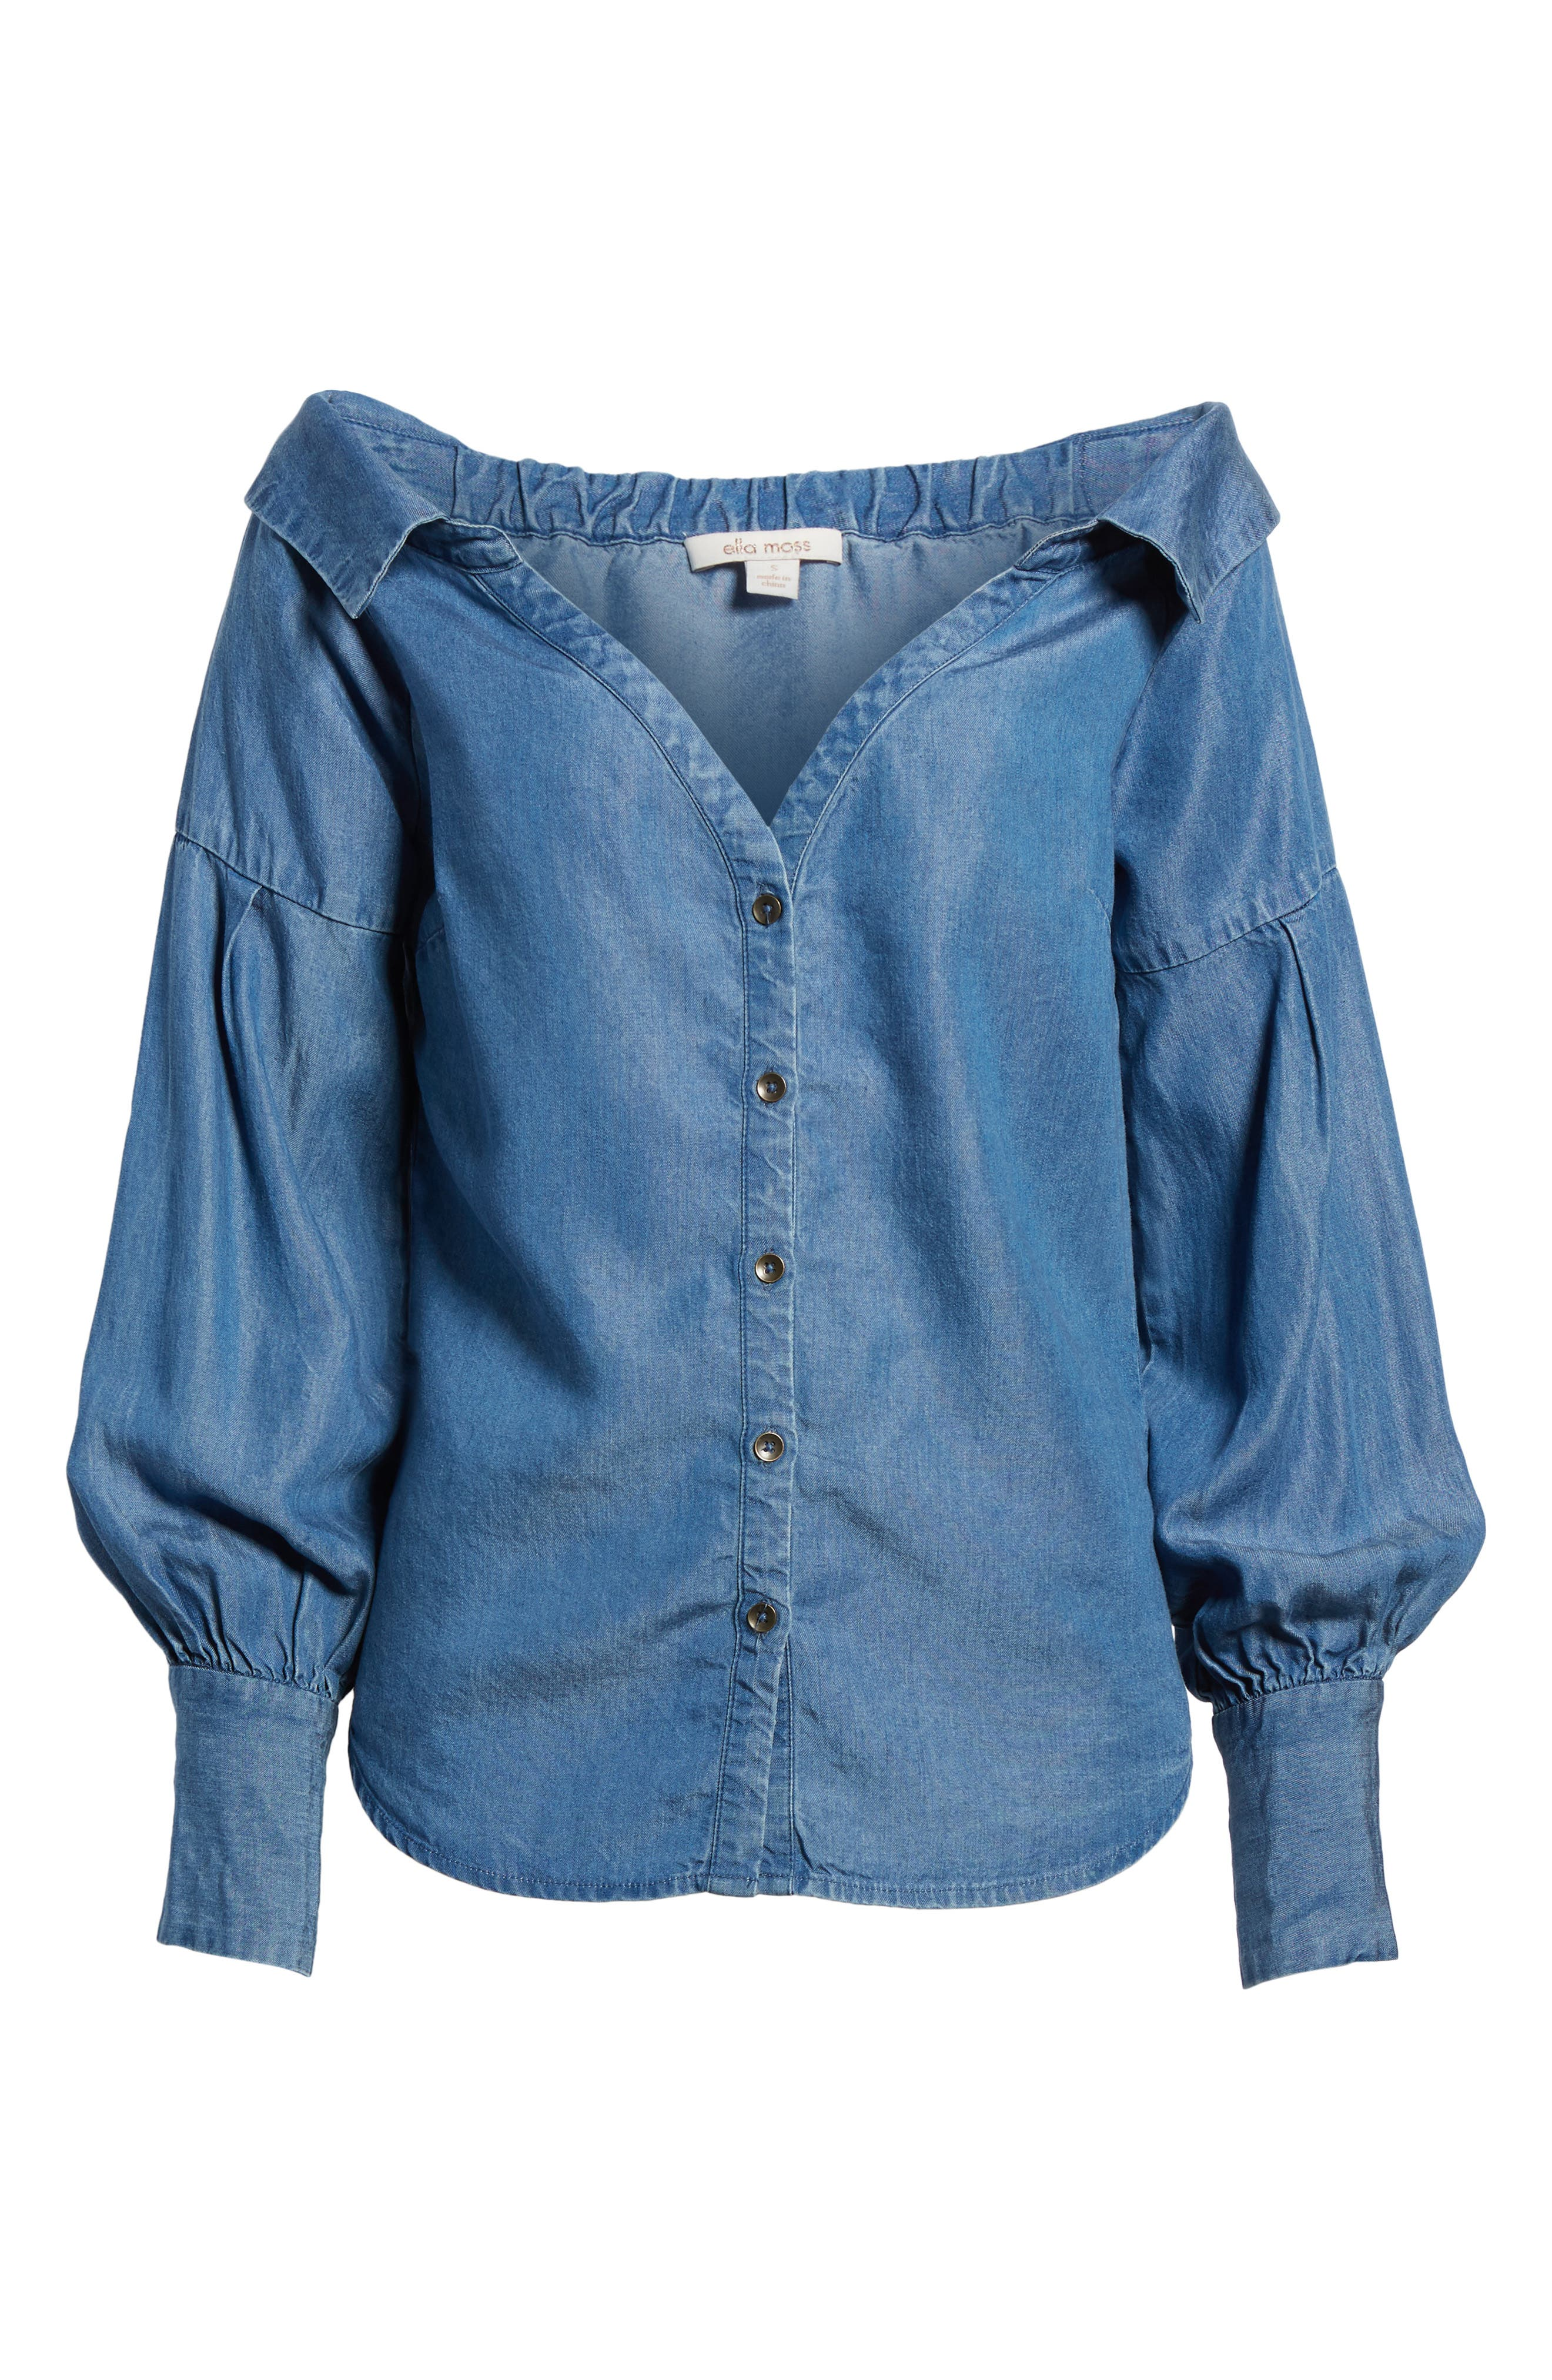 Off the Shoulder Chambray Top,                             Alternate thumbnail 6, color,                             Med Wash